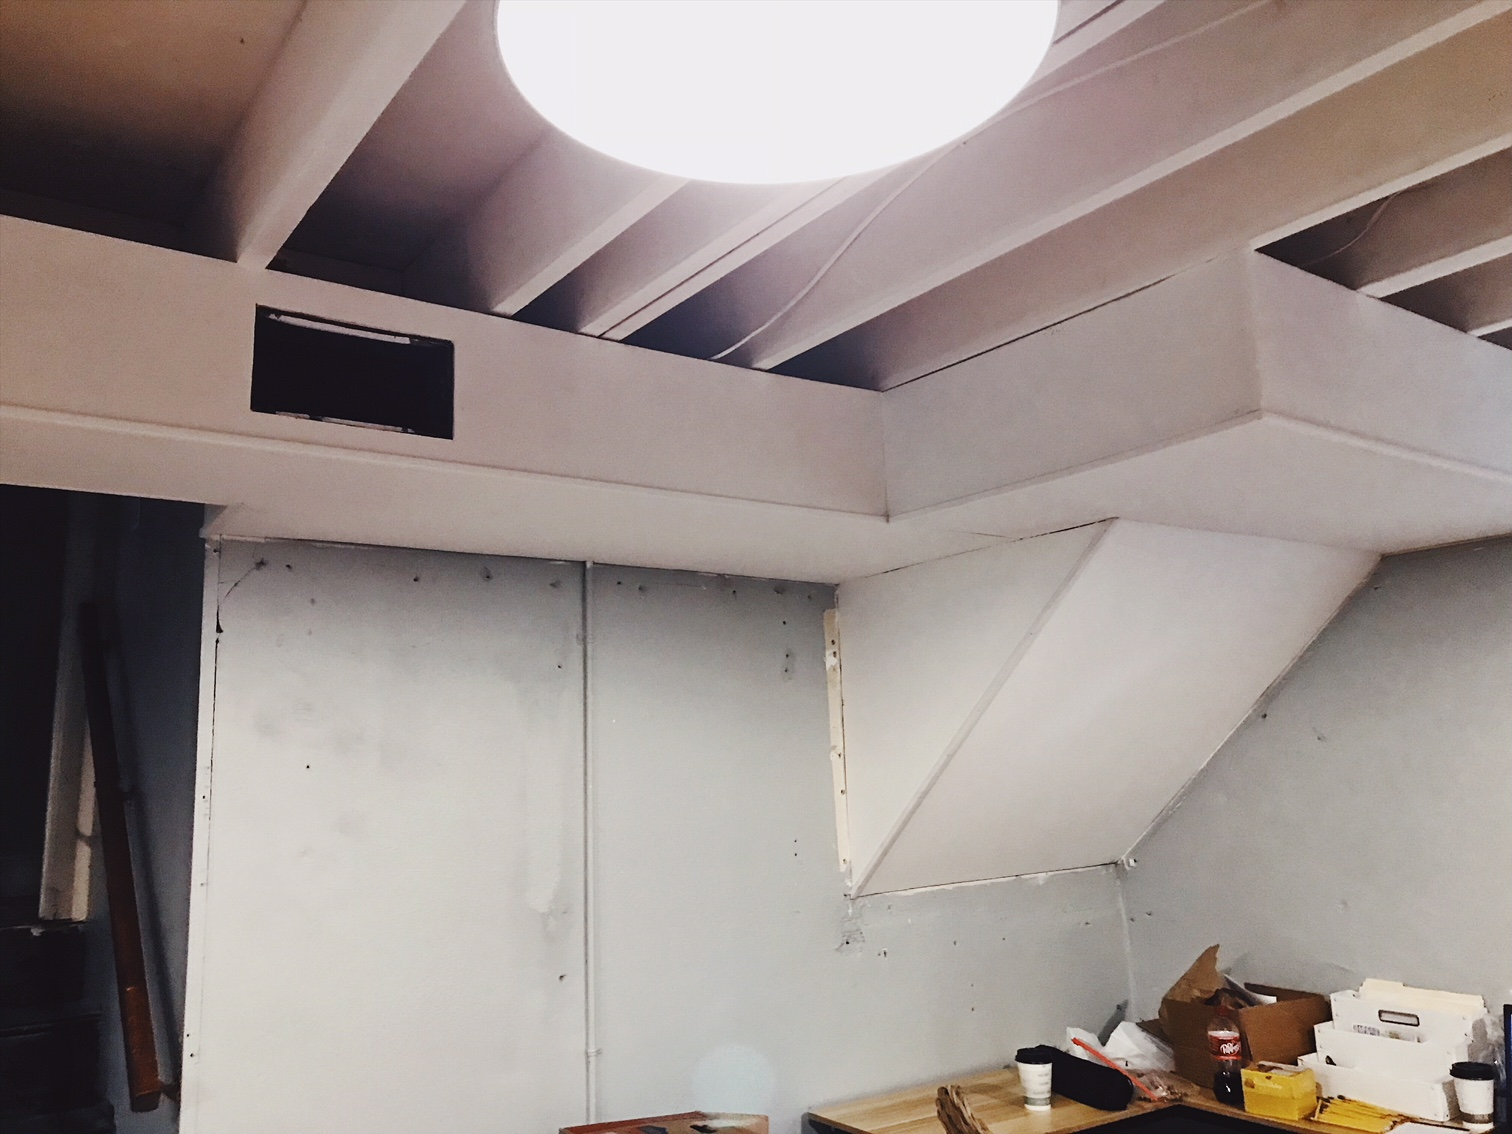 Open Painted basement ceiling